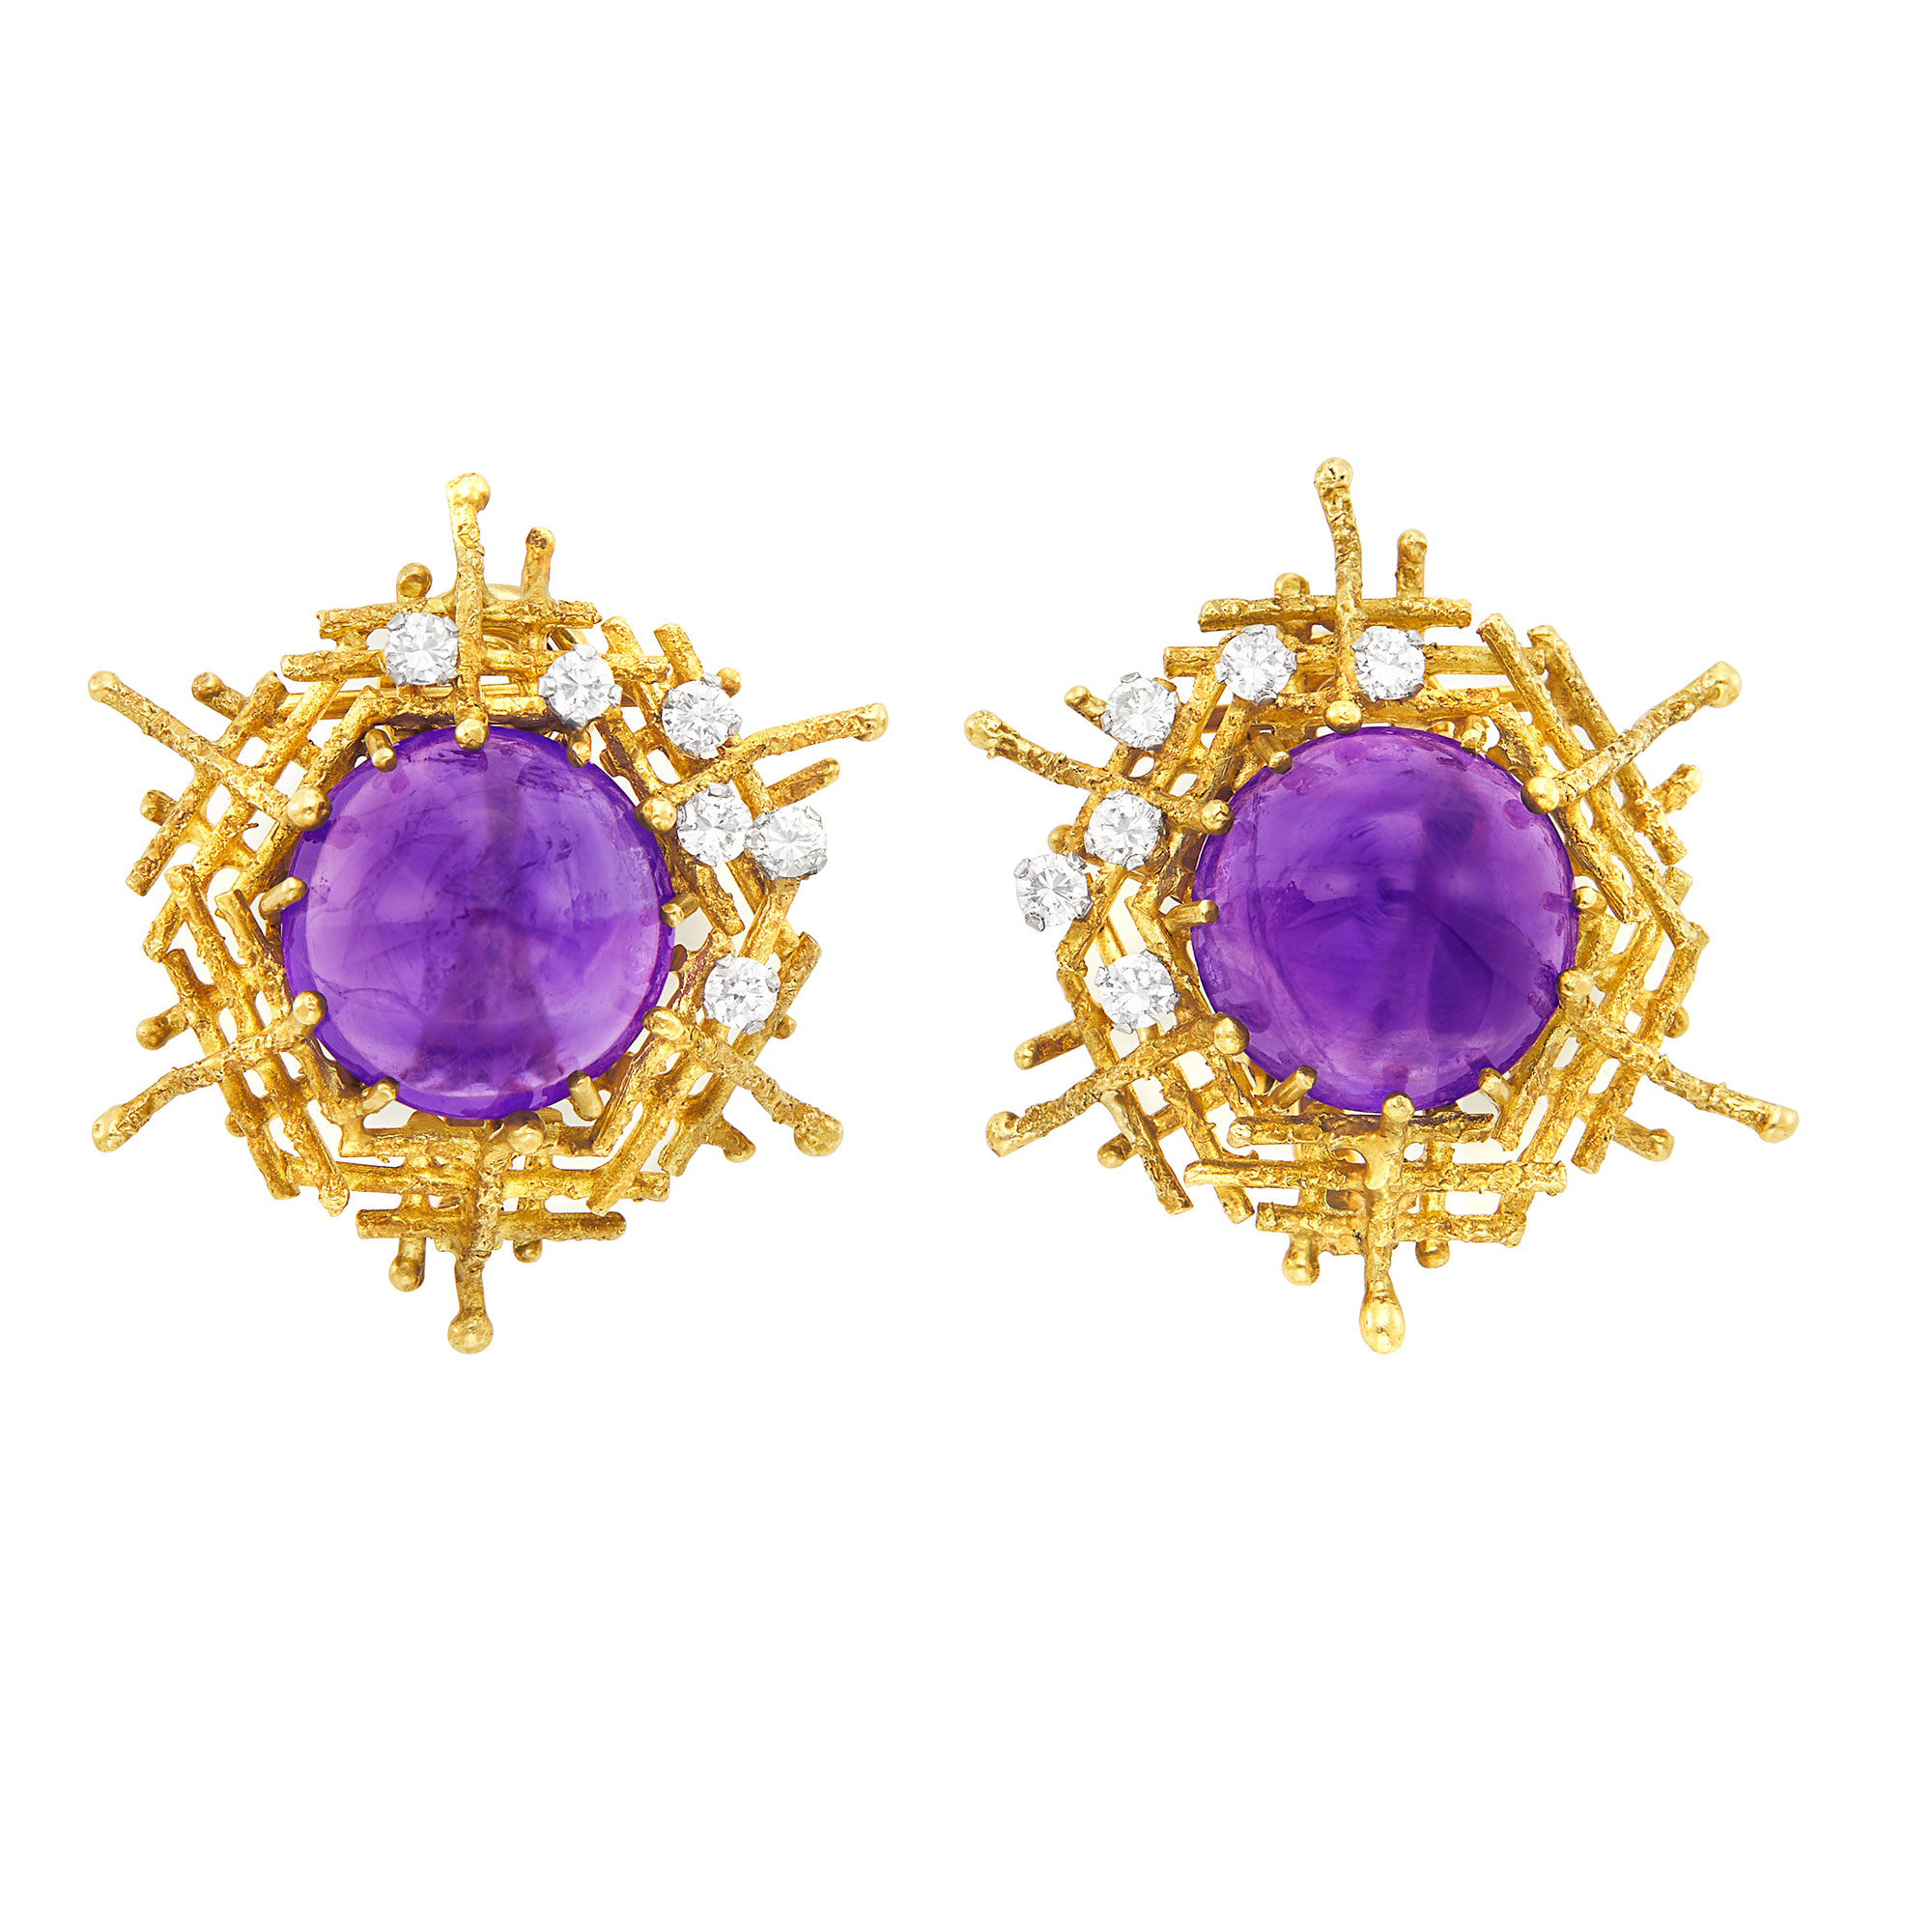 Lot image - Pair of Gold, Platinum, Cabochon Amethyst and Diamond Earclips, Attributed to George Weil